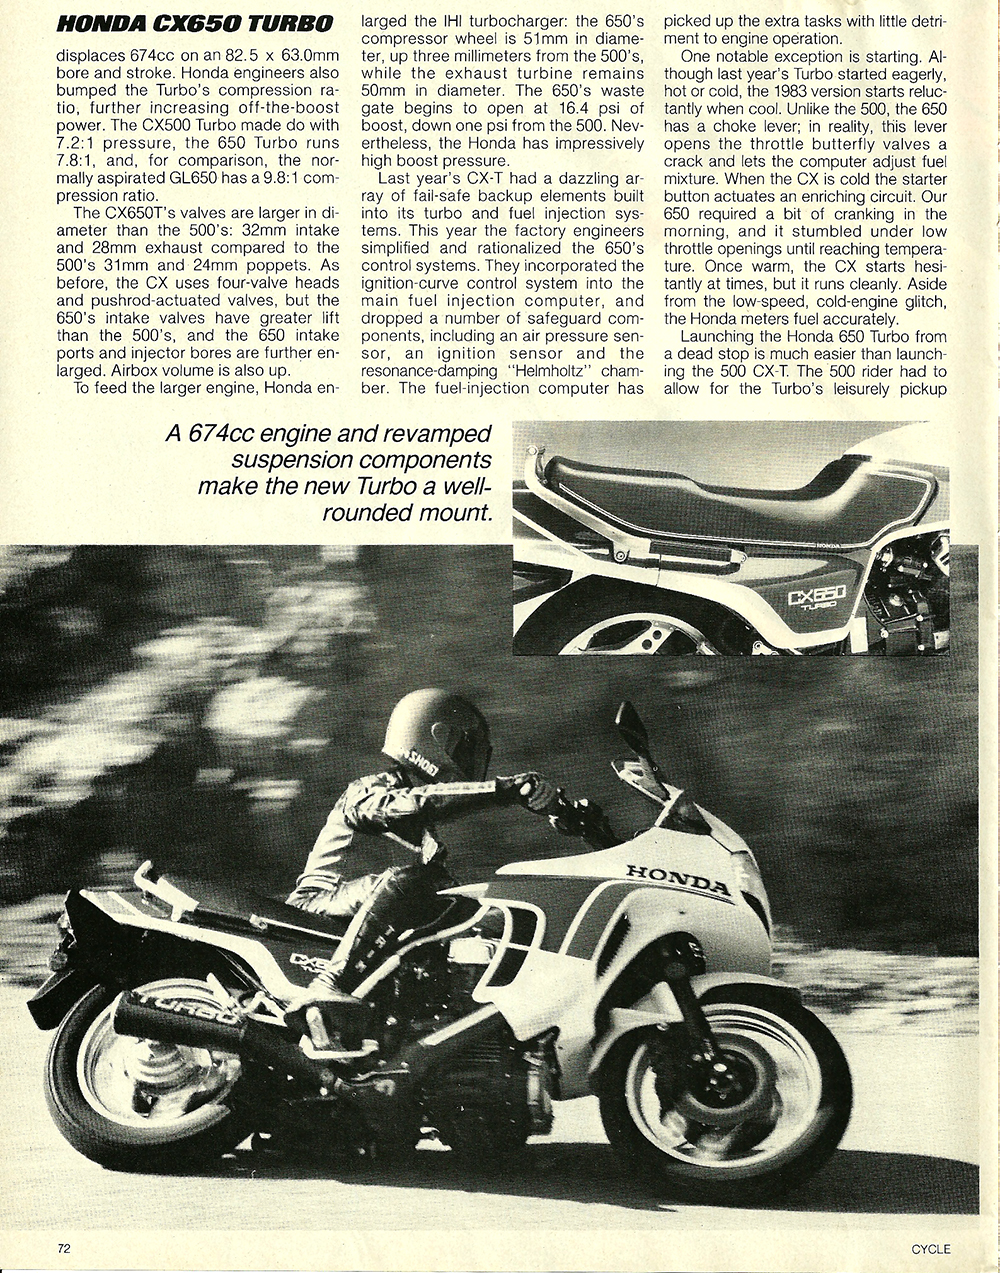 1983 Honda CX650 turbo road test 3.jpg